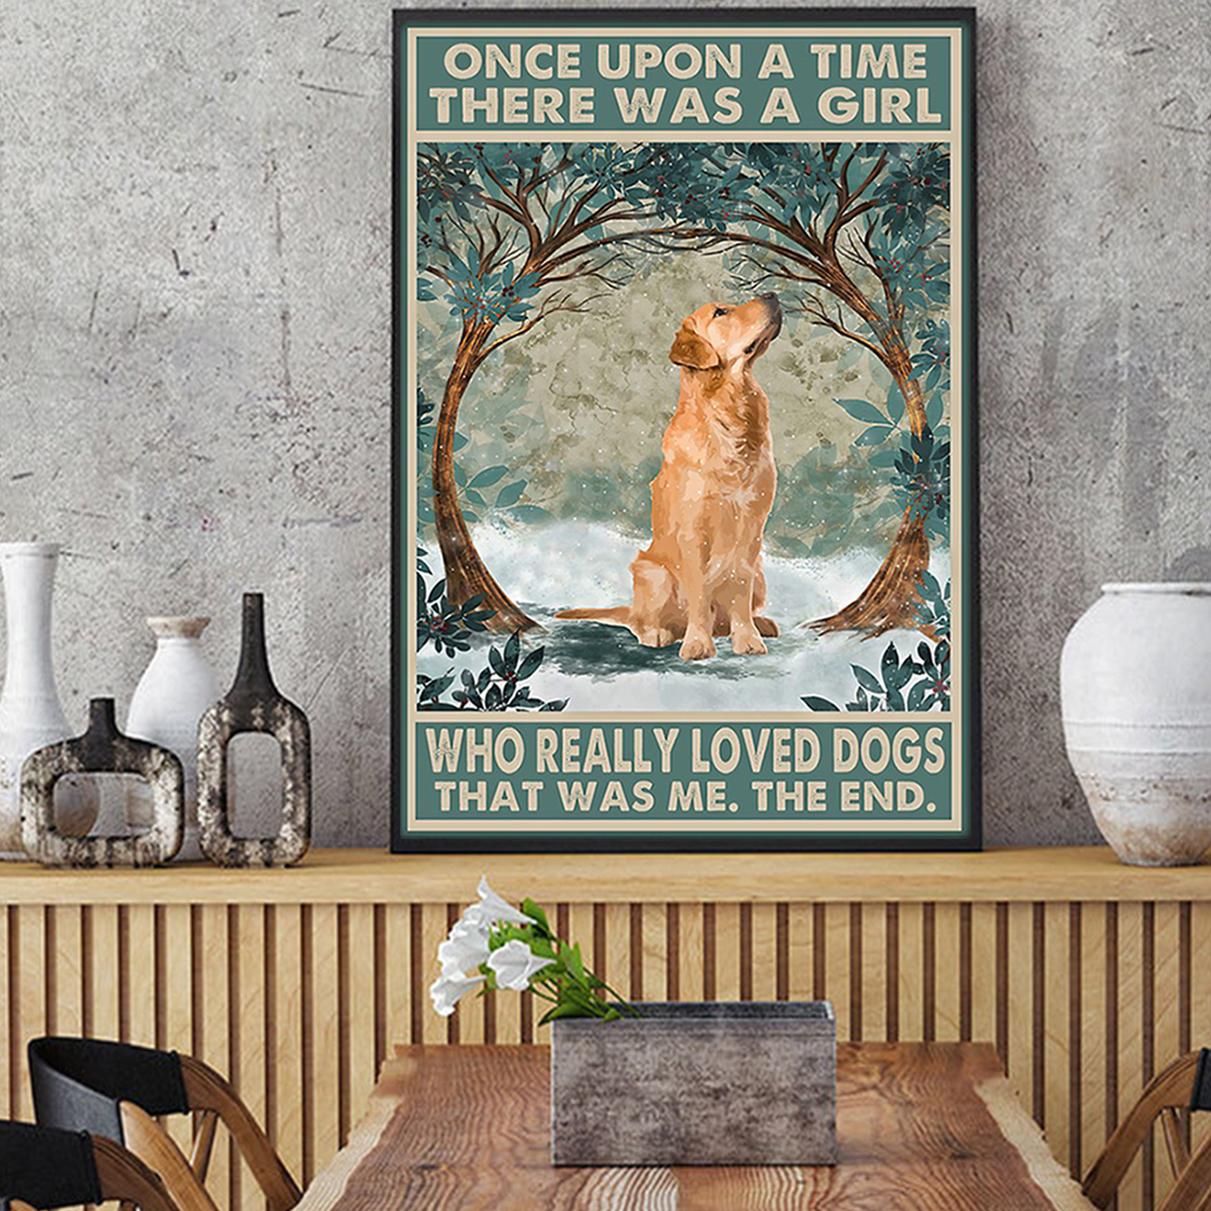 Once upon a time there was a girl who loved dogs Golden retriever poster